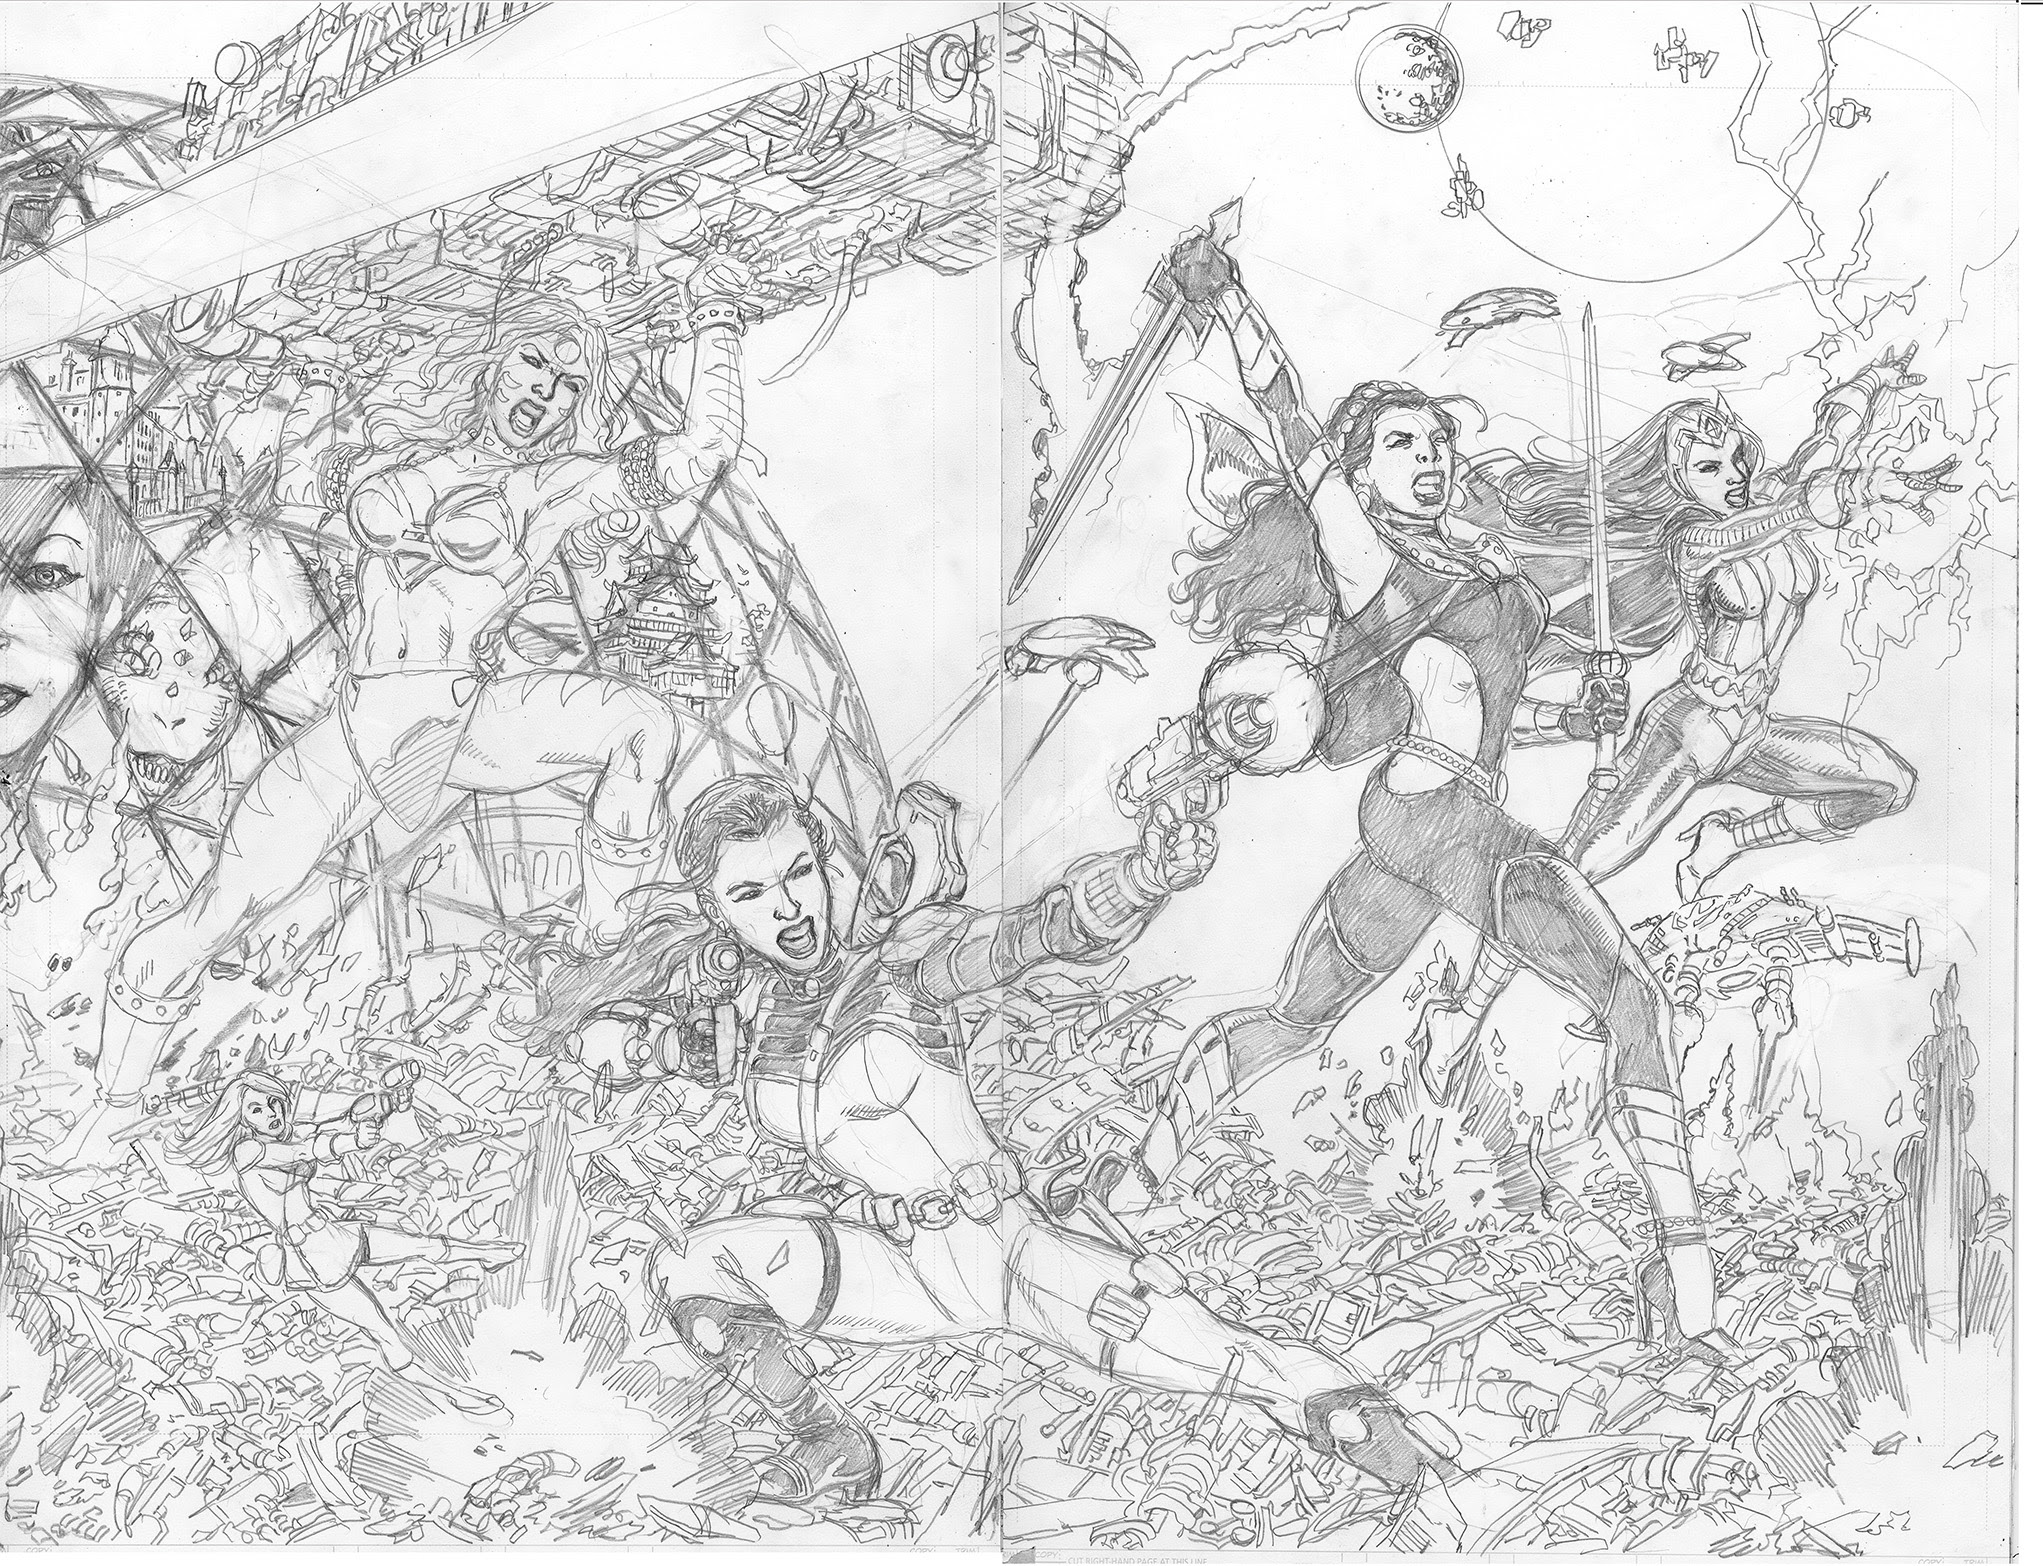 GEORGE PÉREZ'S SIRENS #1 Pencils Right-Side Cover C by George Pérez